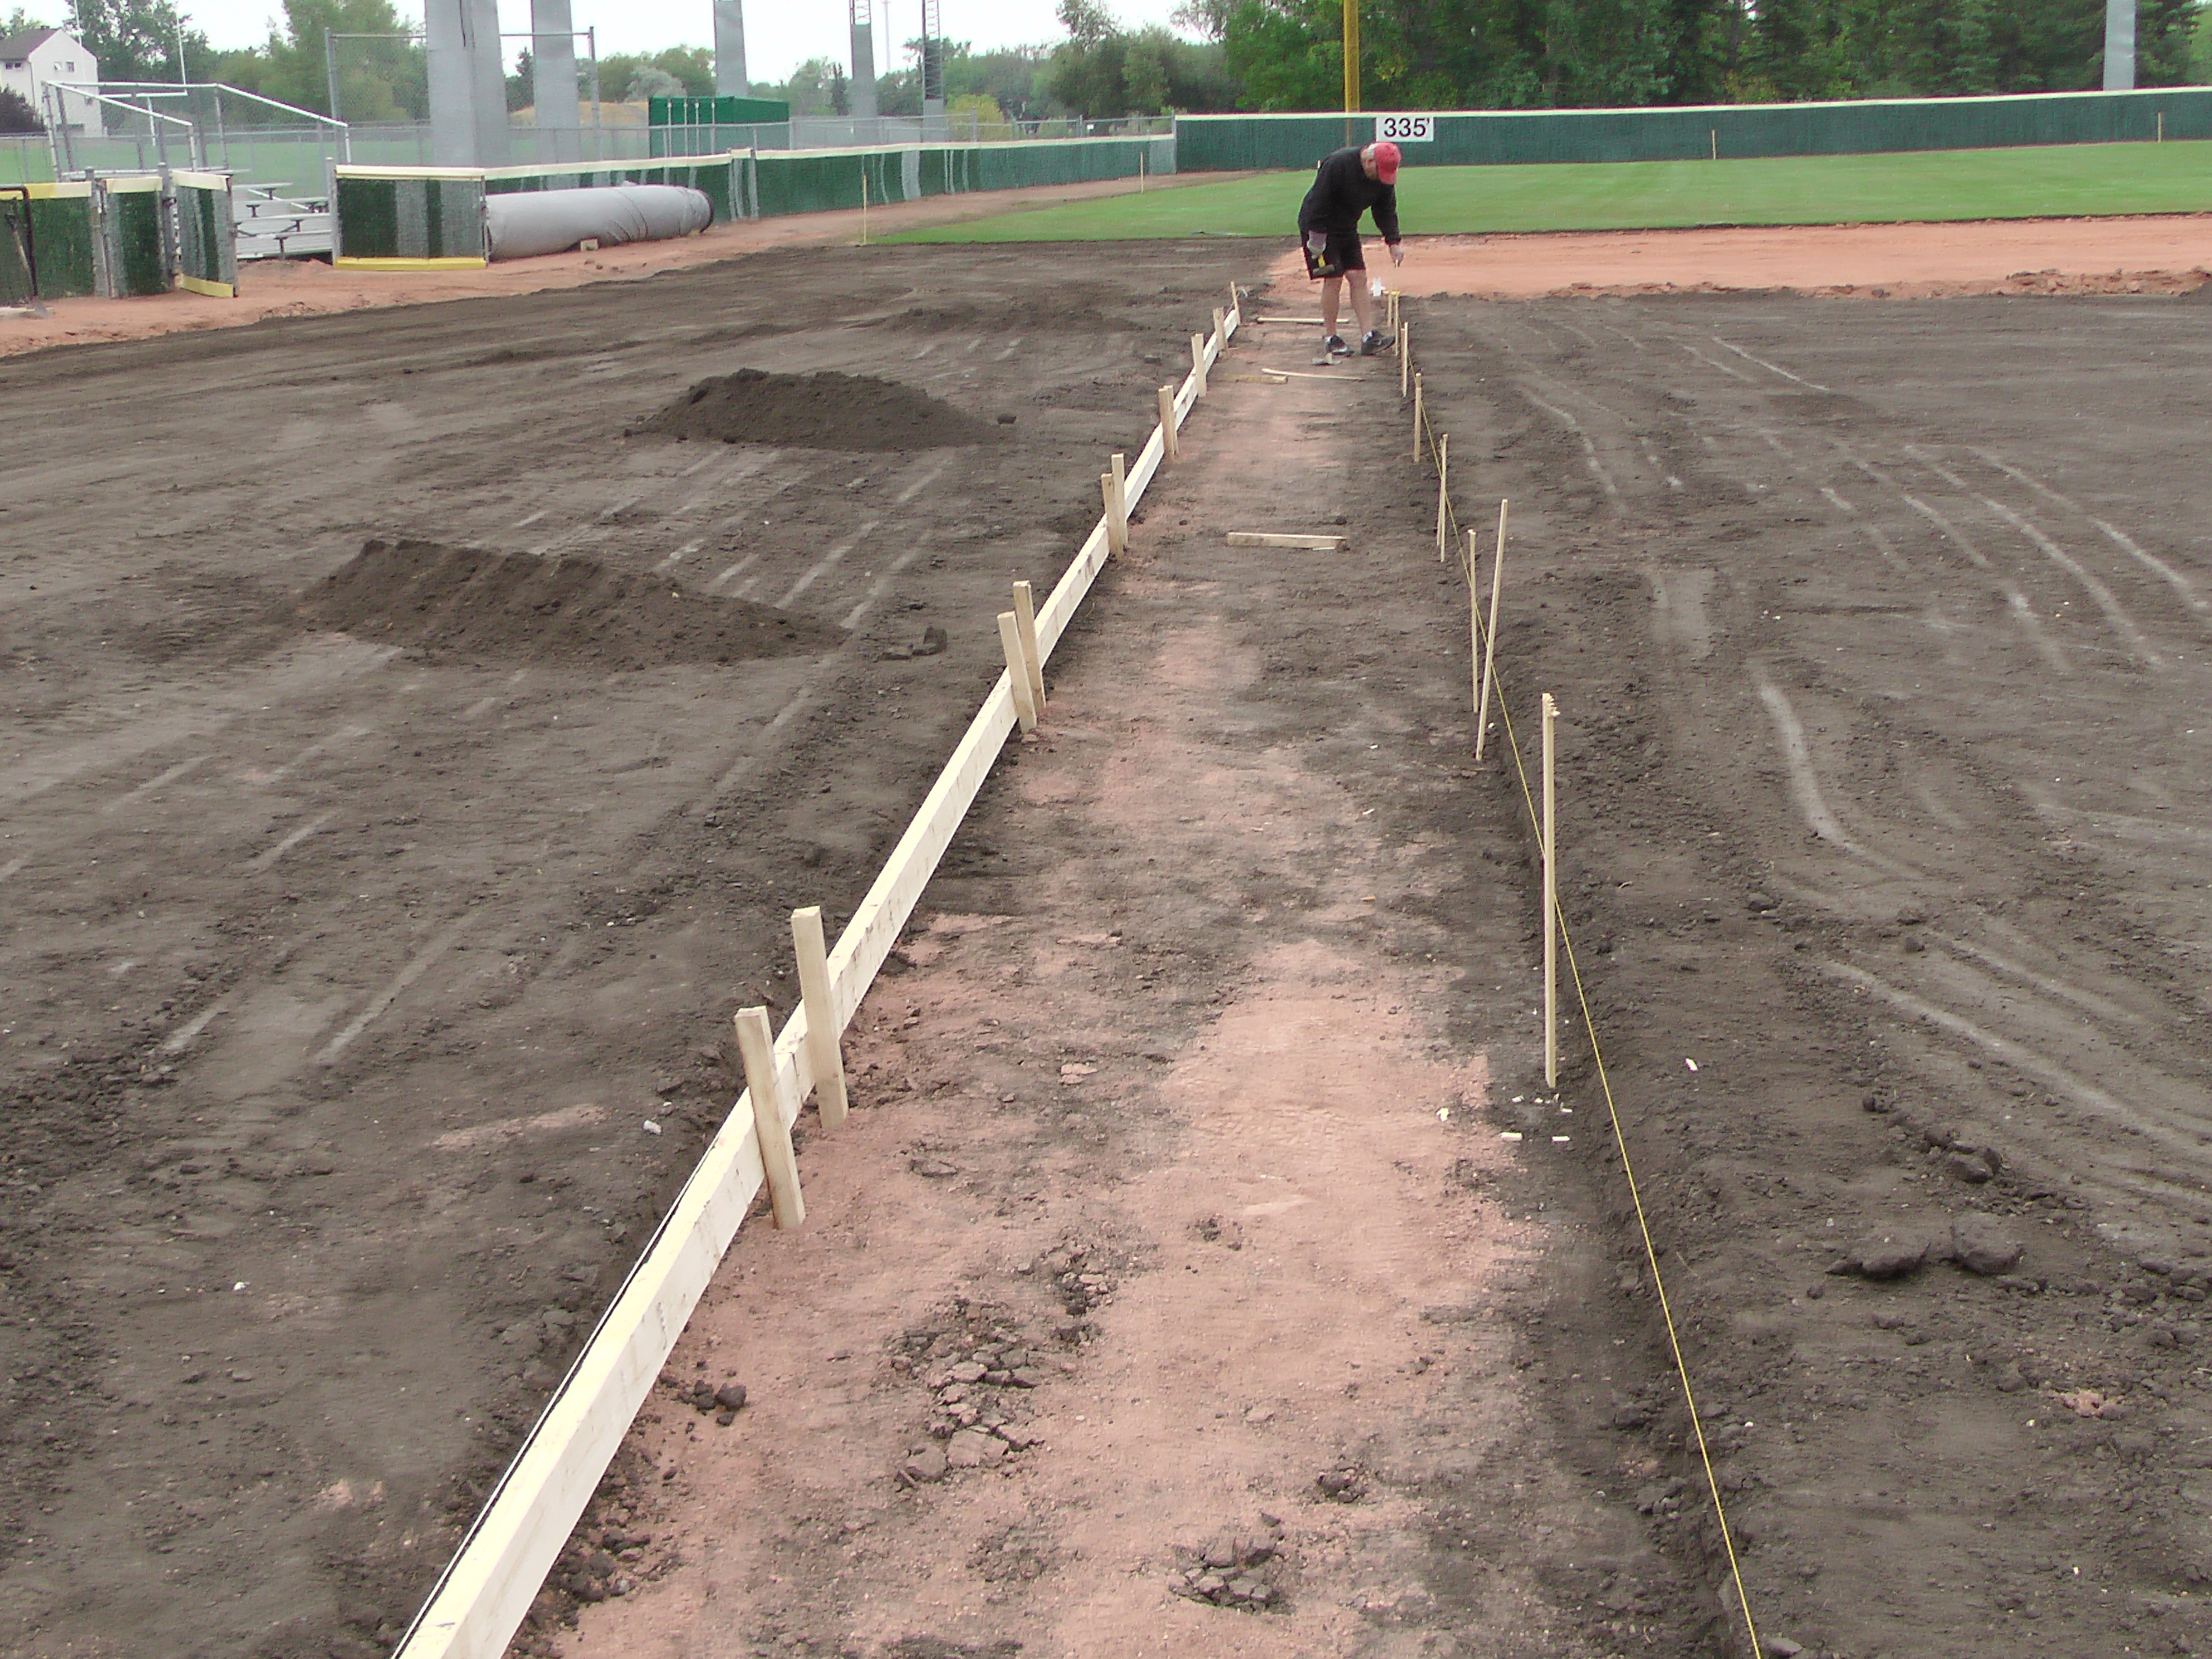 Aug 26/27 2018 Optimist Park Renovations, Continue Leveling Top Soil, More Top Soil added, Digging/Leveling Base Lines/Start Level Shale - Image 9